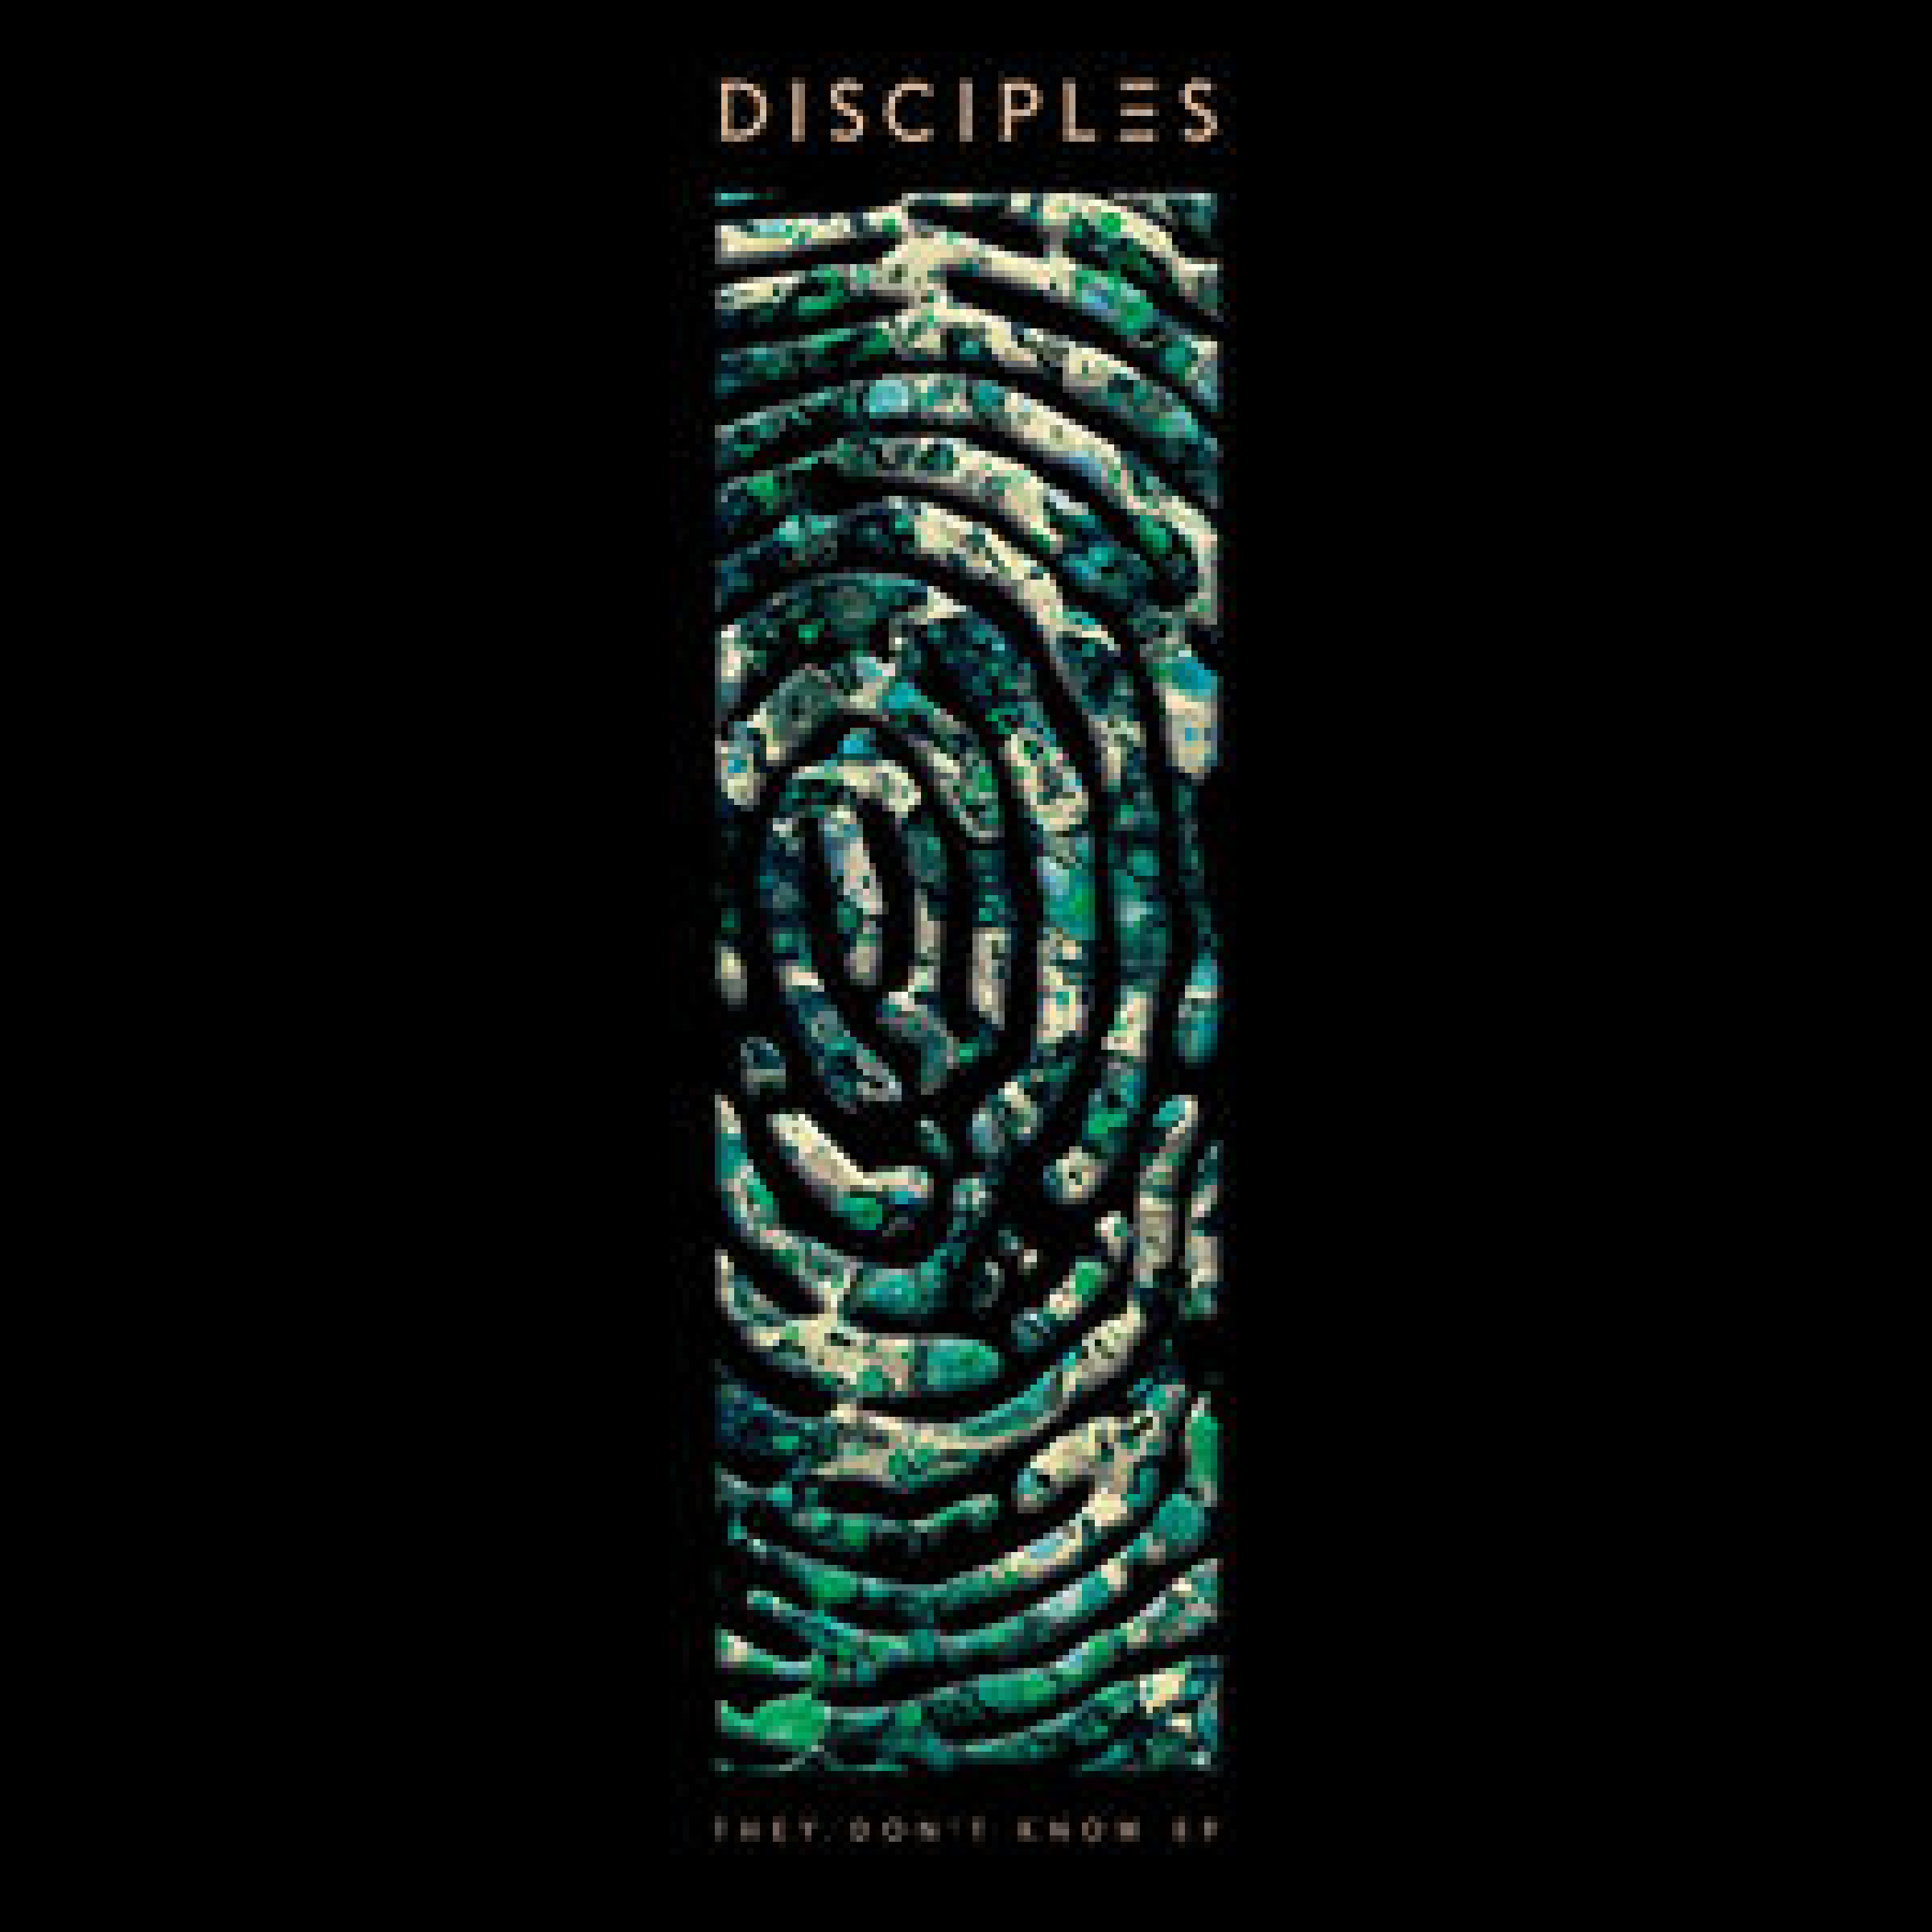 Disciples - They Dont Know